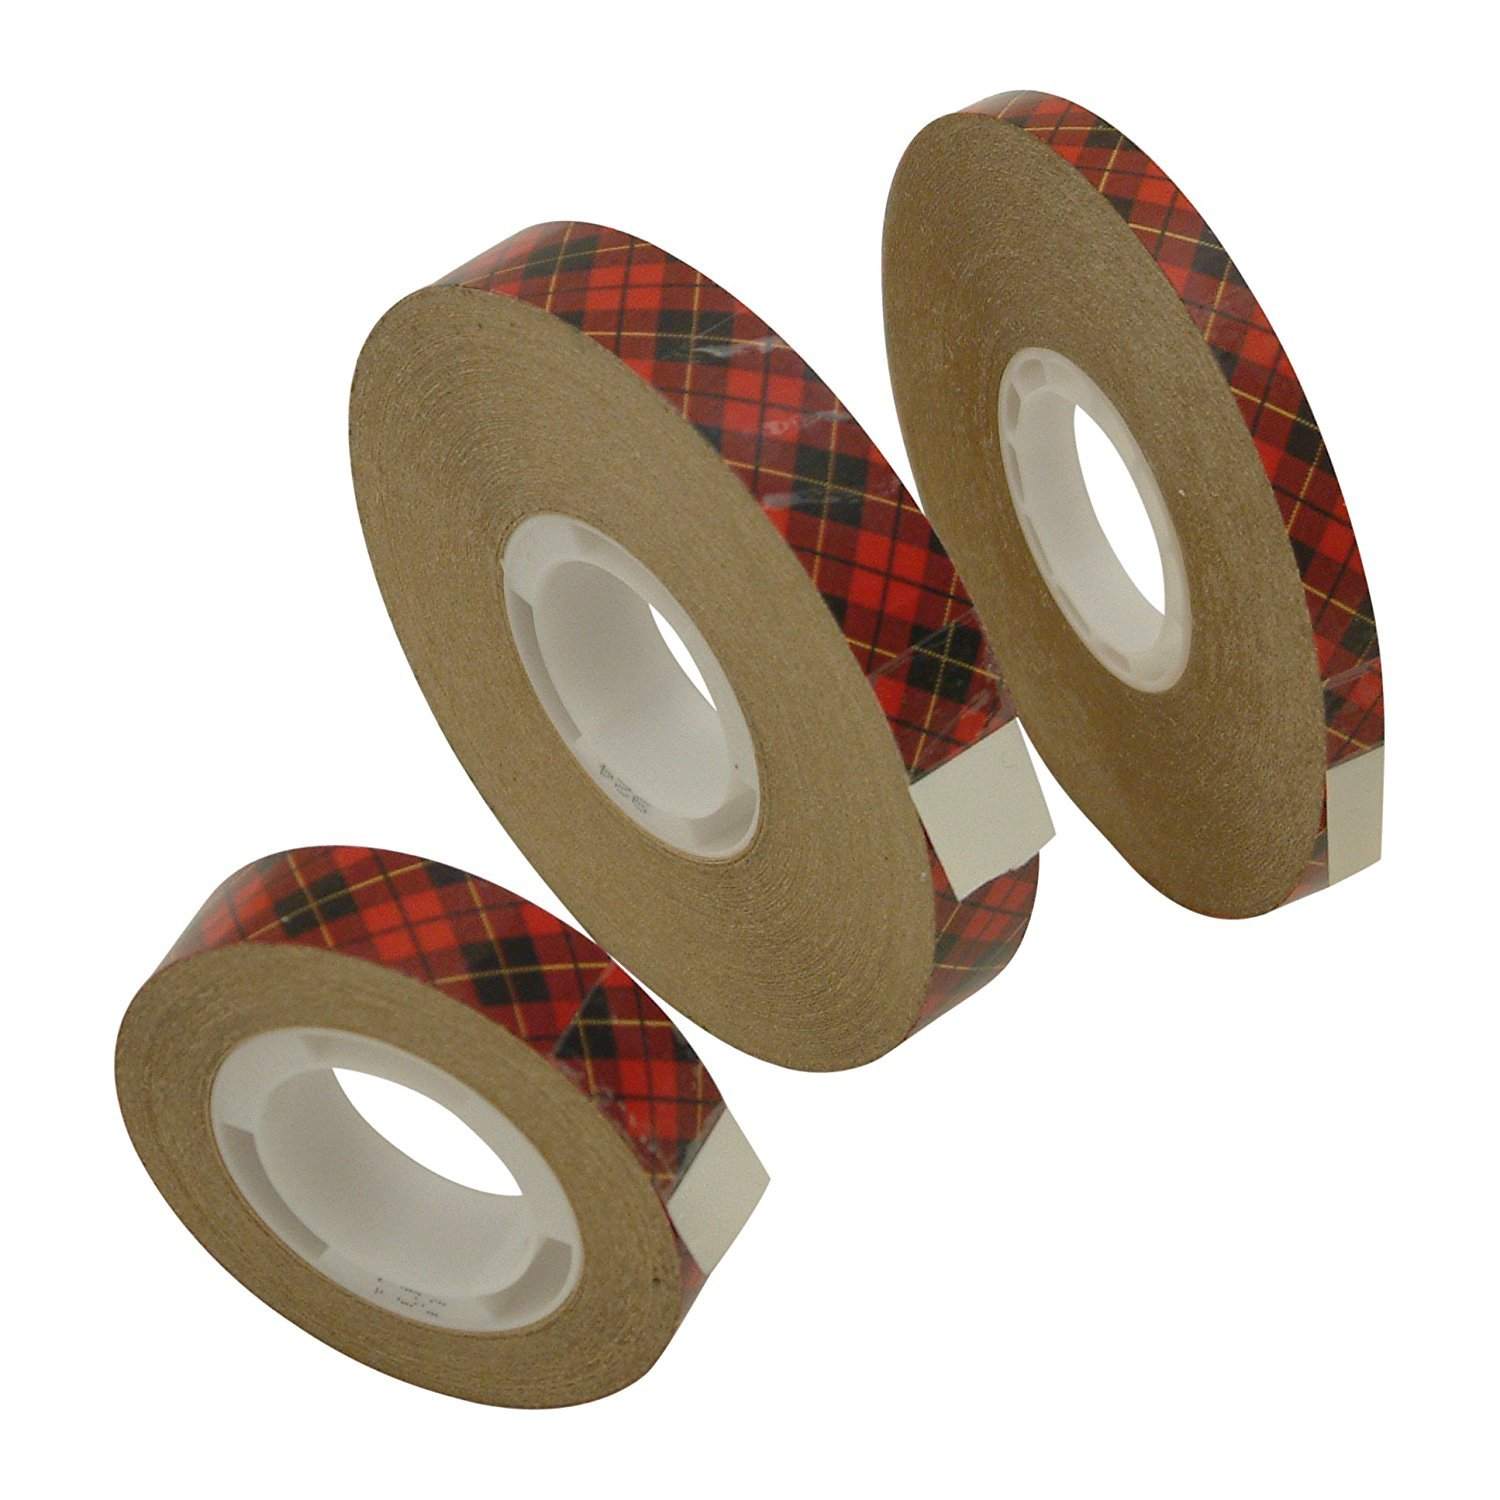 Set of 2 3M Scotch ATG Adhesive Transfer Tape 924 Bundled by Maven Gifts by 3M-Construction and Home Improvements (Image #4)